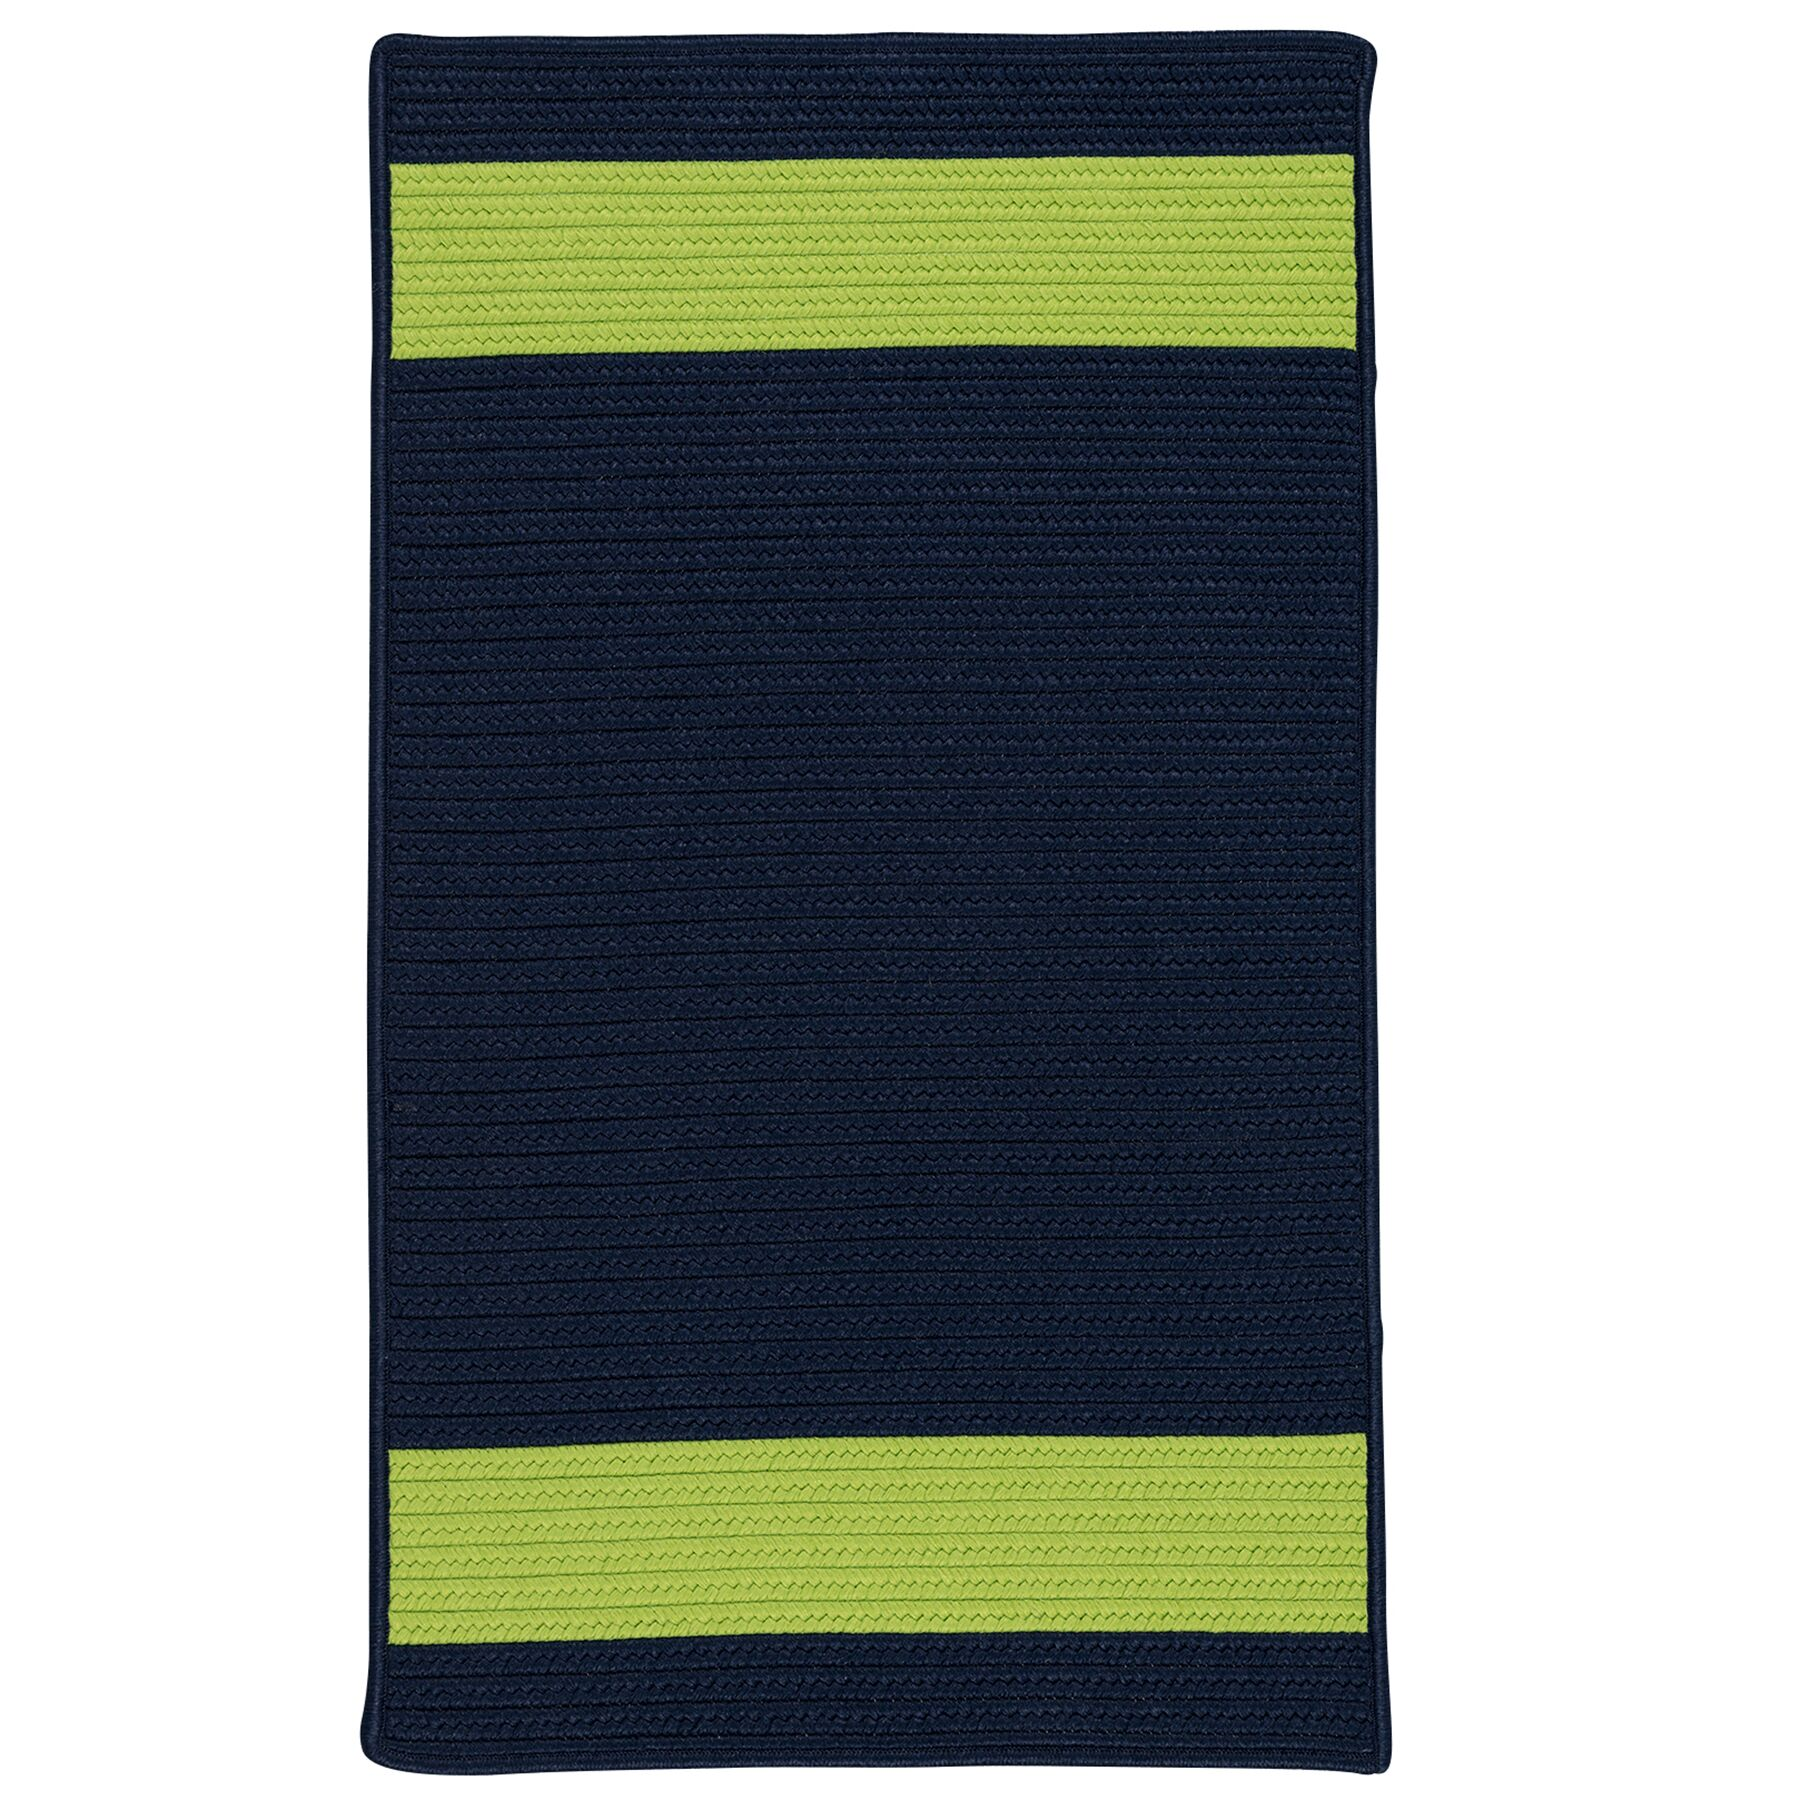 Sumrall Hand-Braided Navy/Green Indoor/Outdoor Area Rug Rug Size: Rectangle 12' x 15'